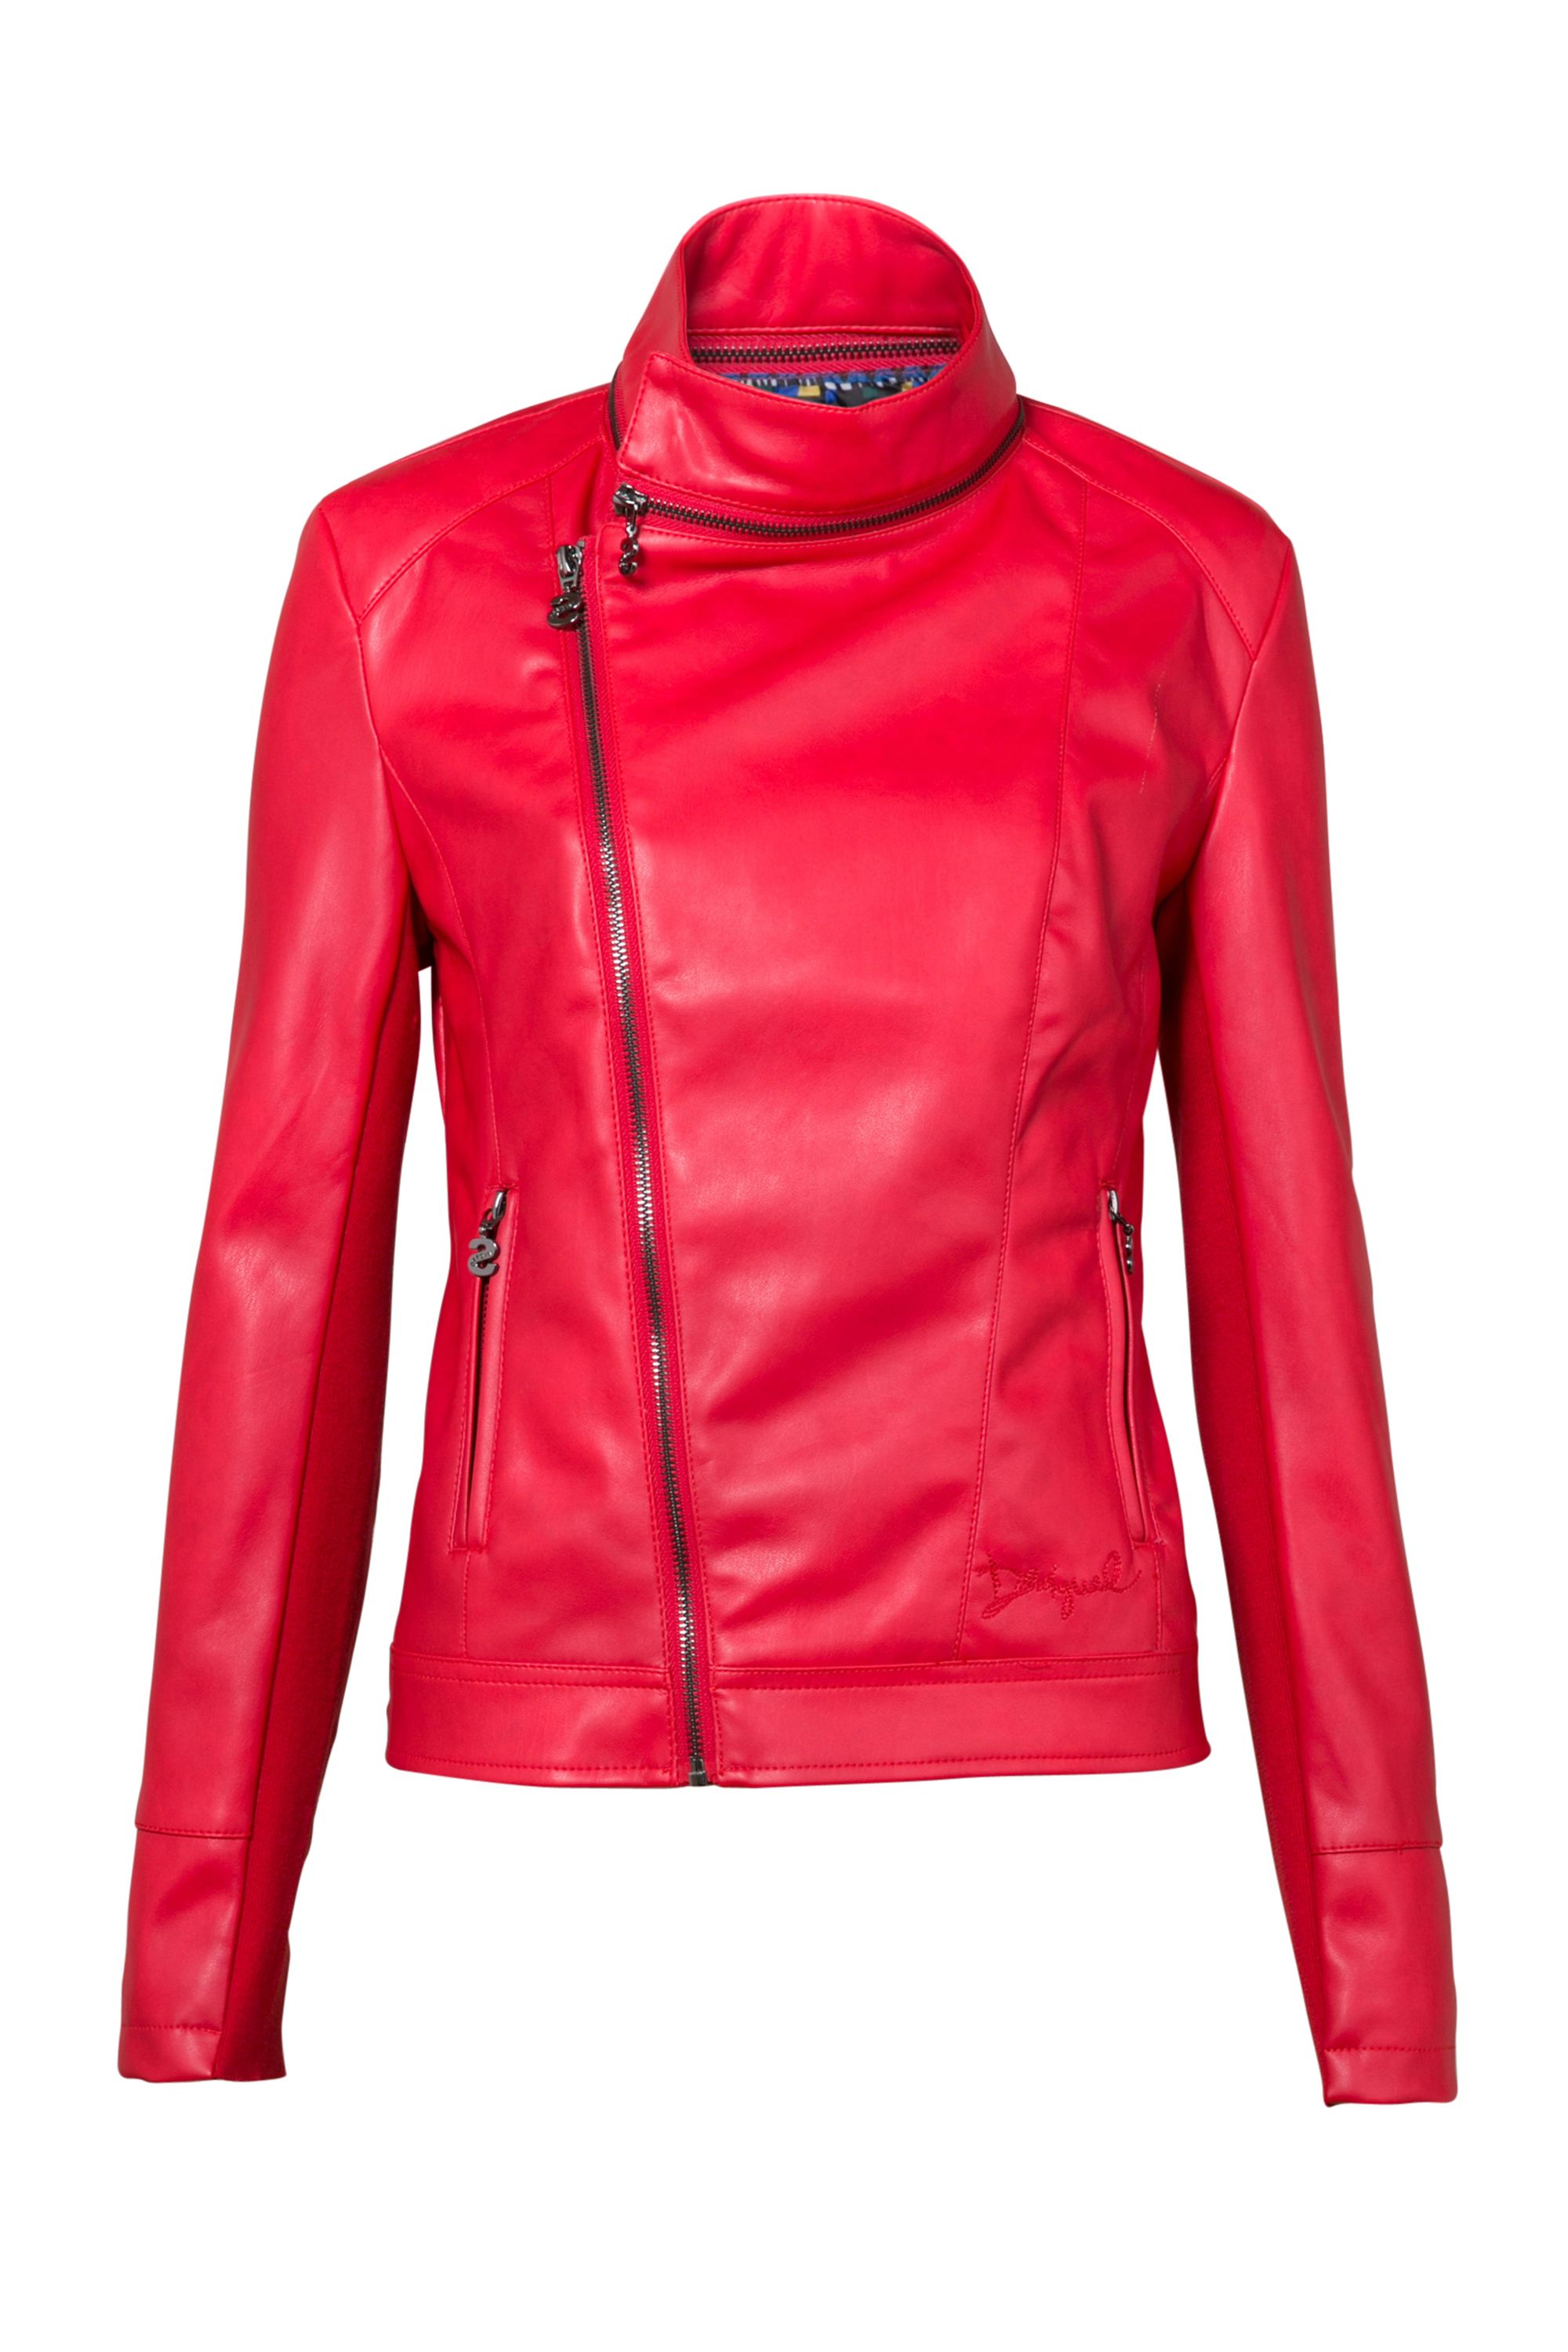 Desigual Jacket Leman, Red